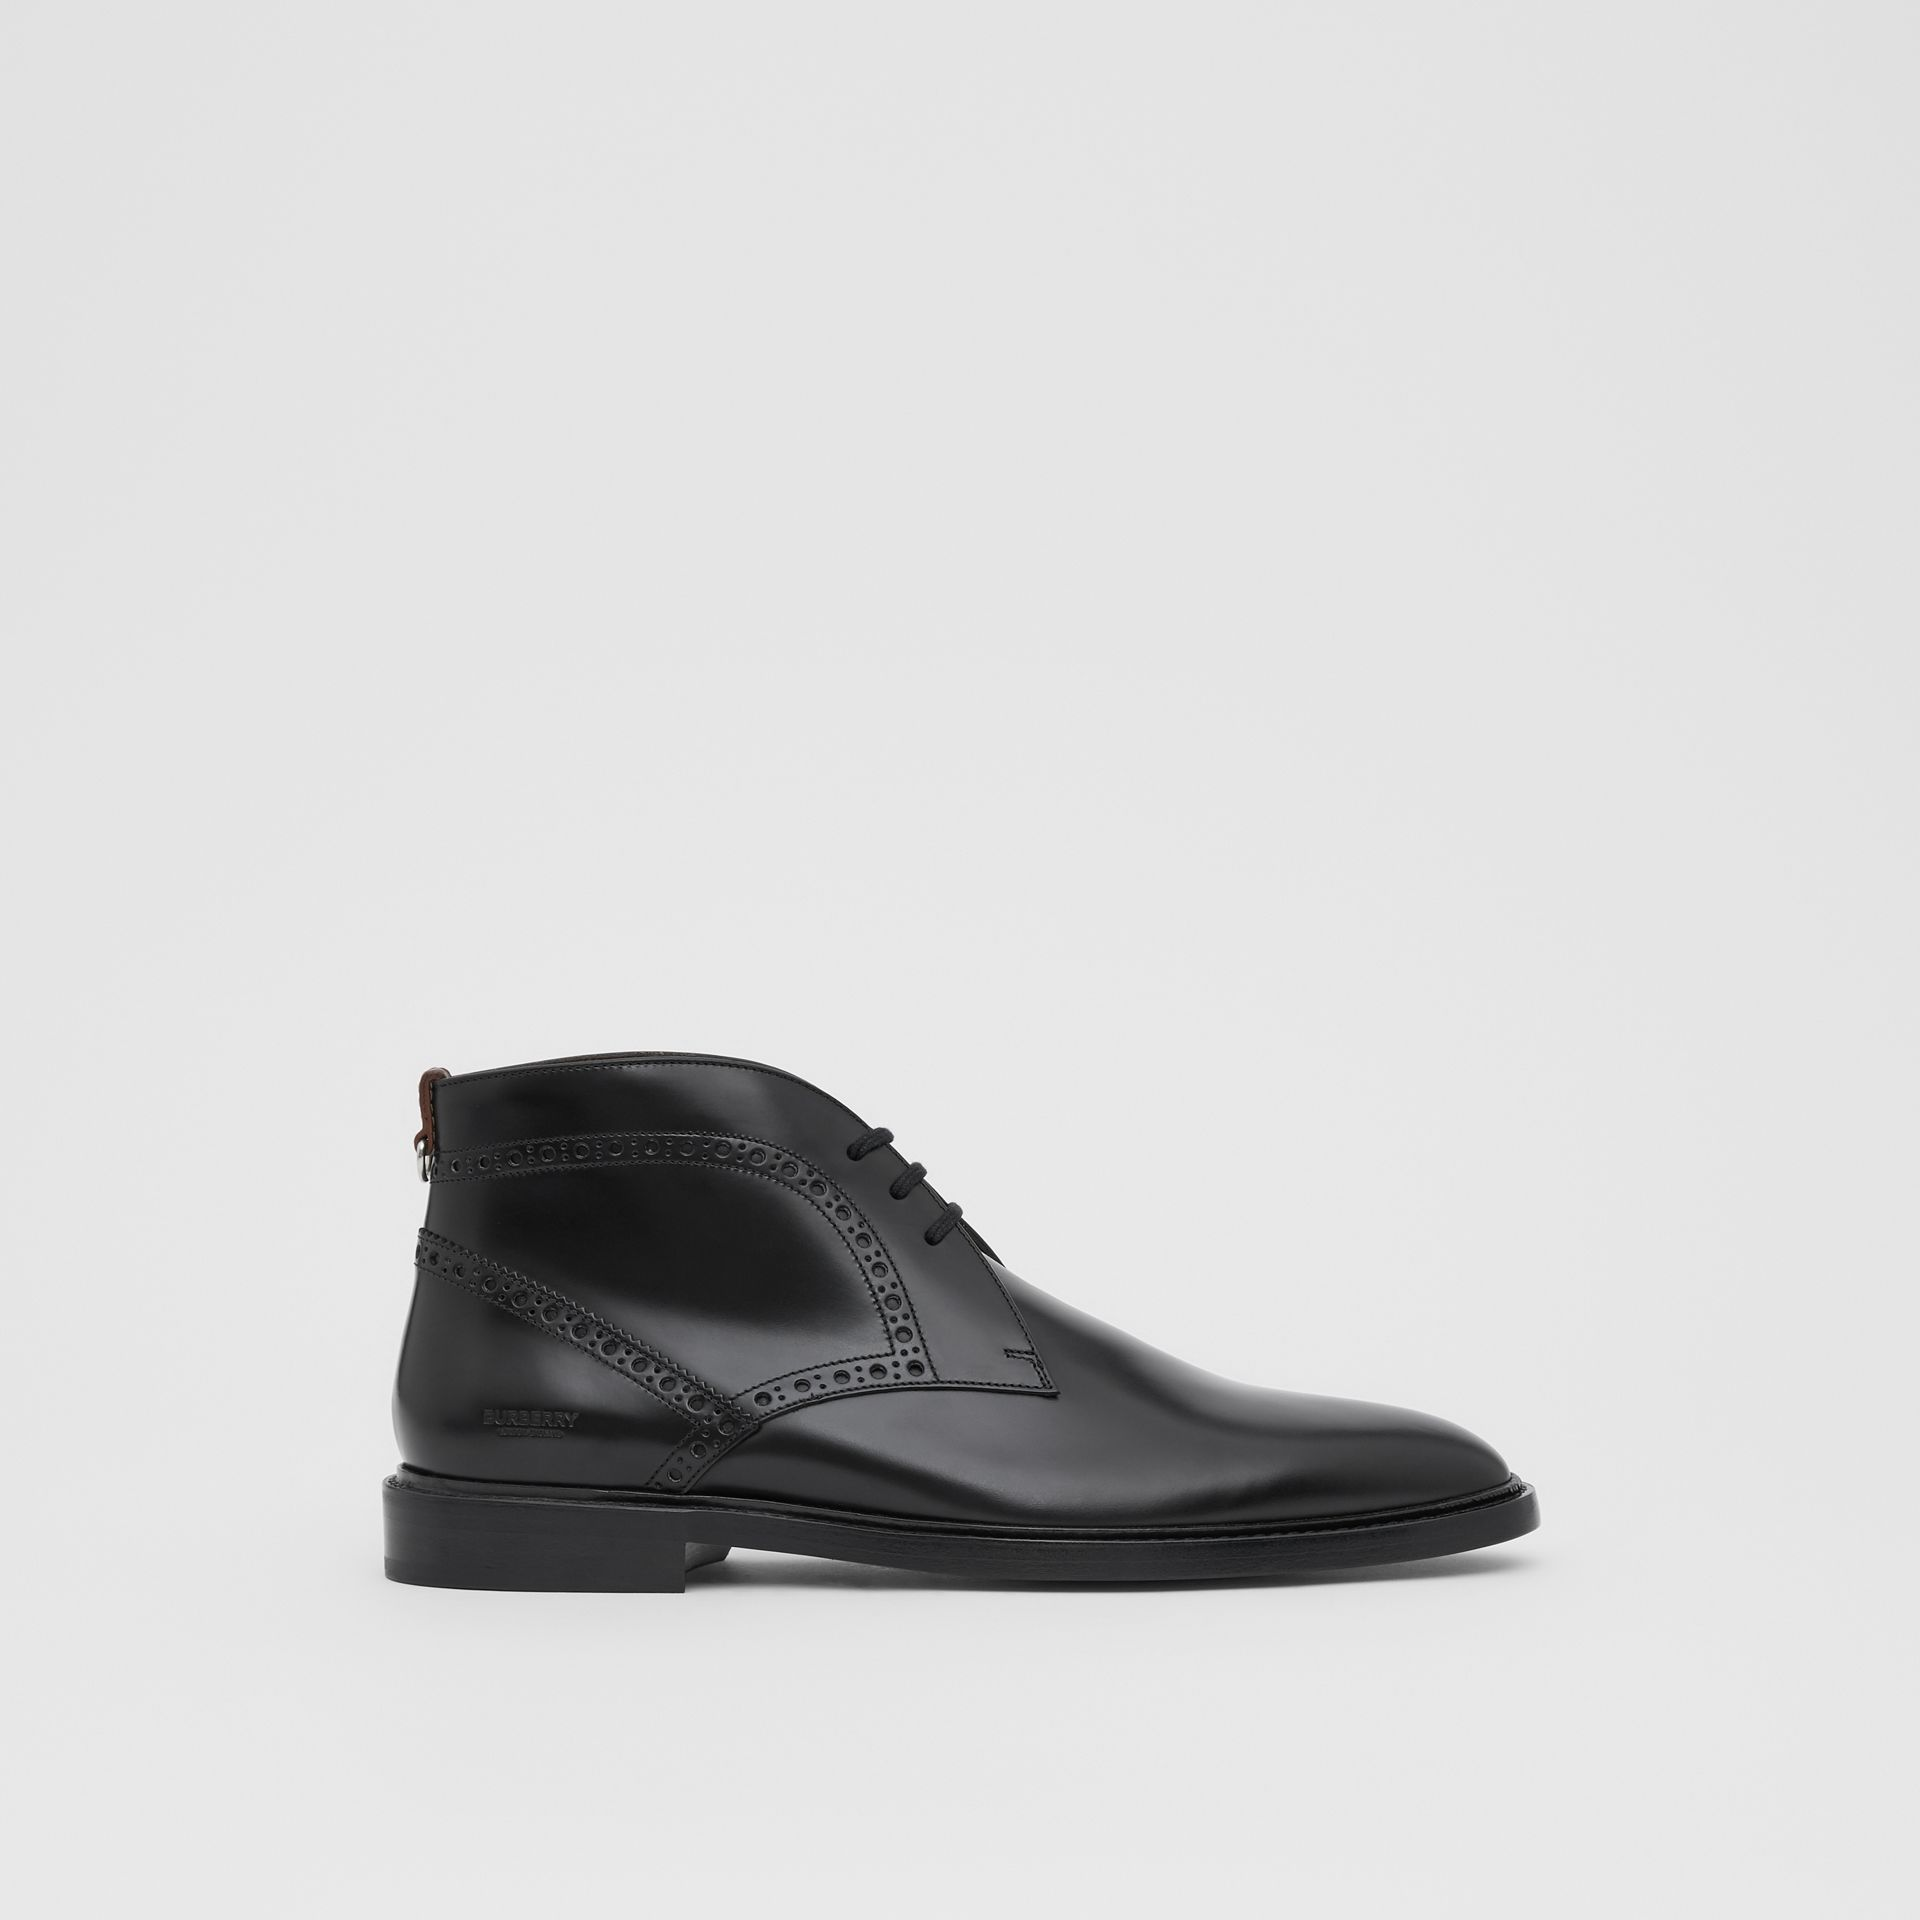 Brogue Detail Leather Boots in Black - Men | Burberry Singapore - gallery image 4